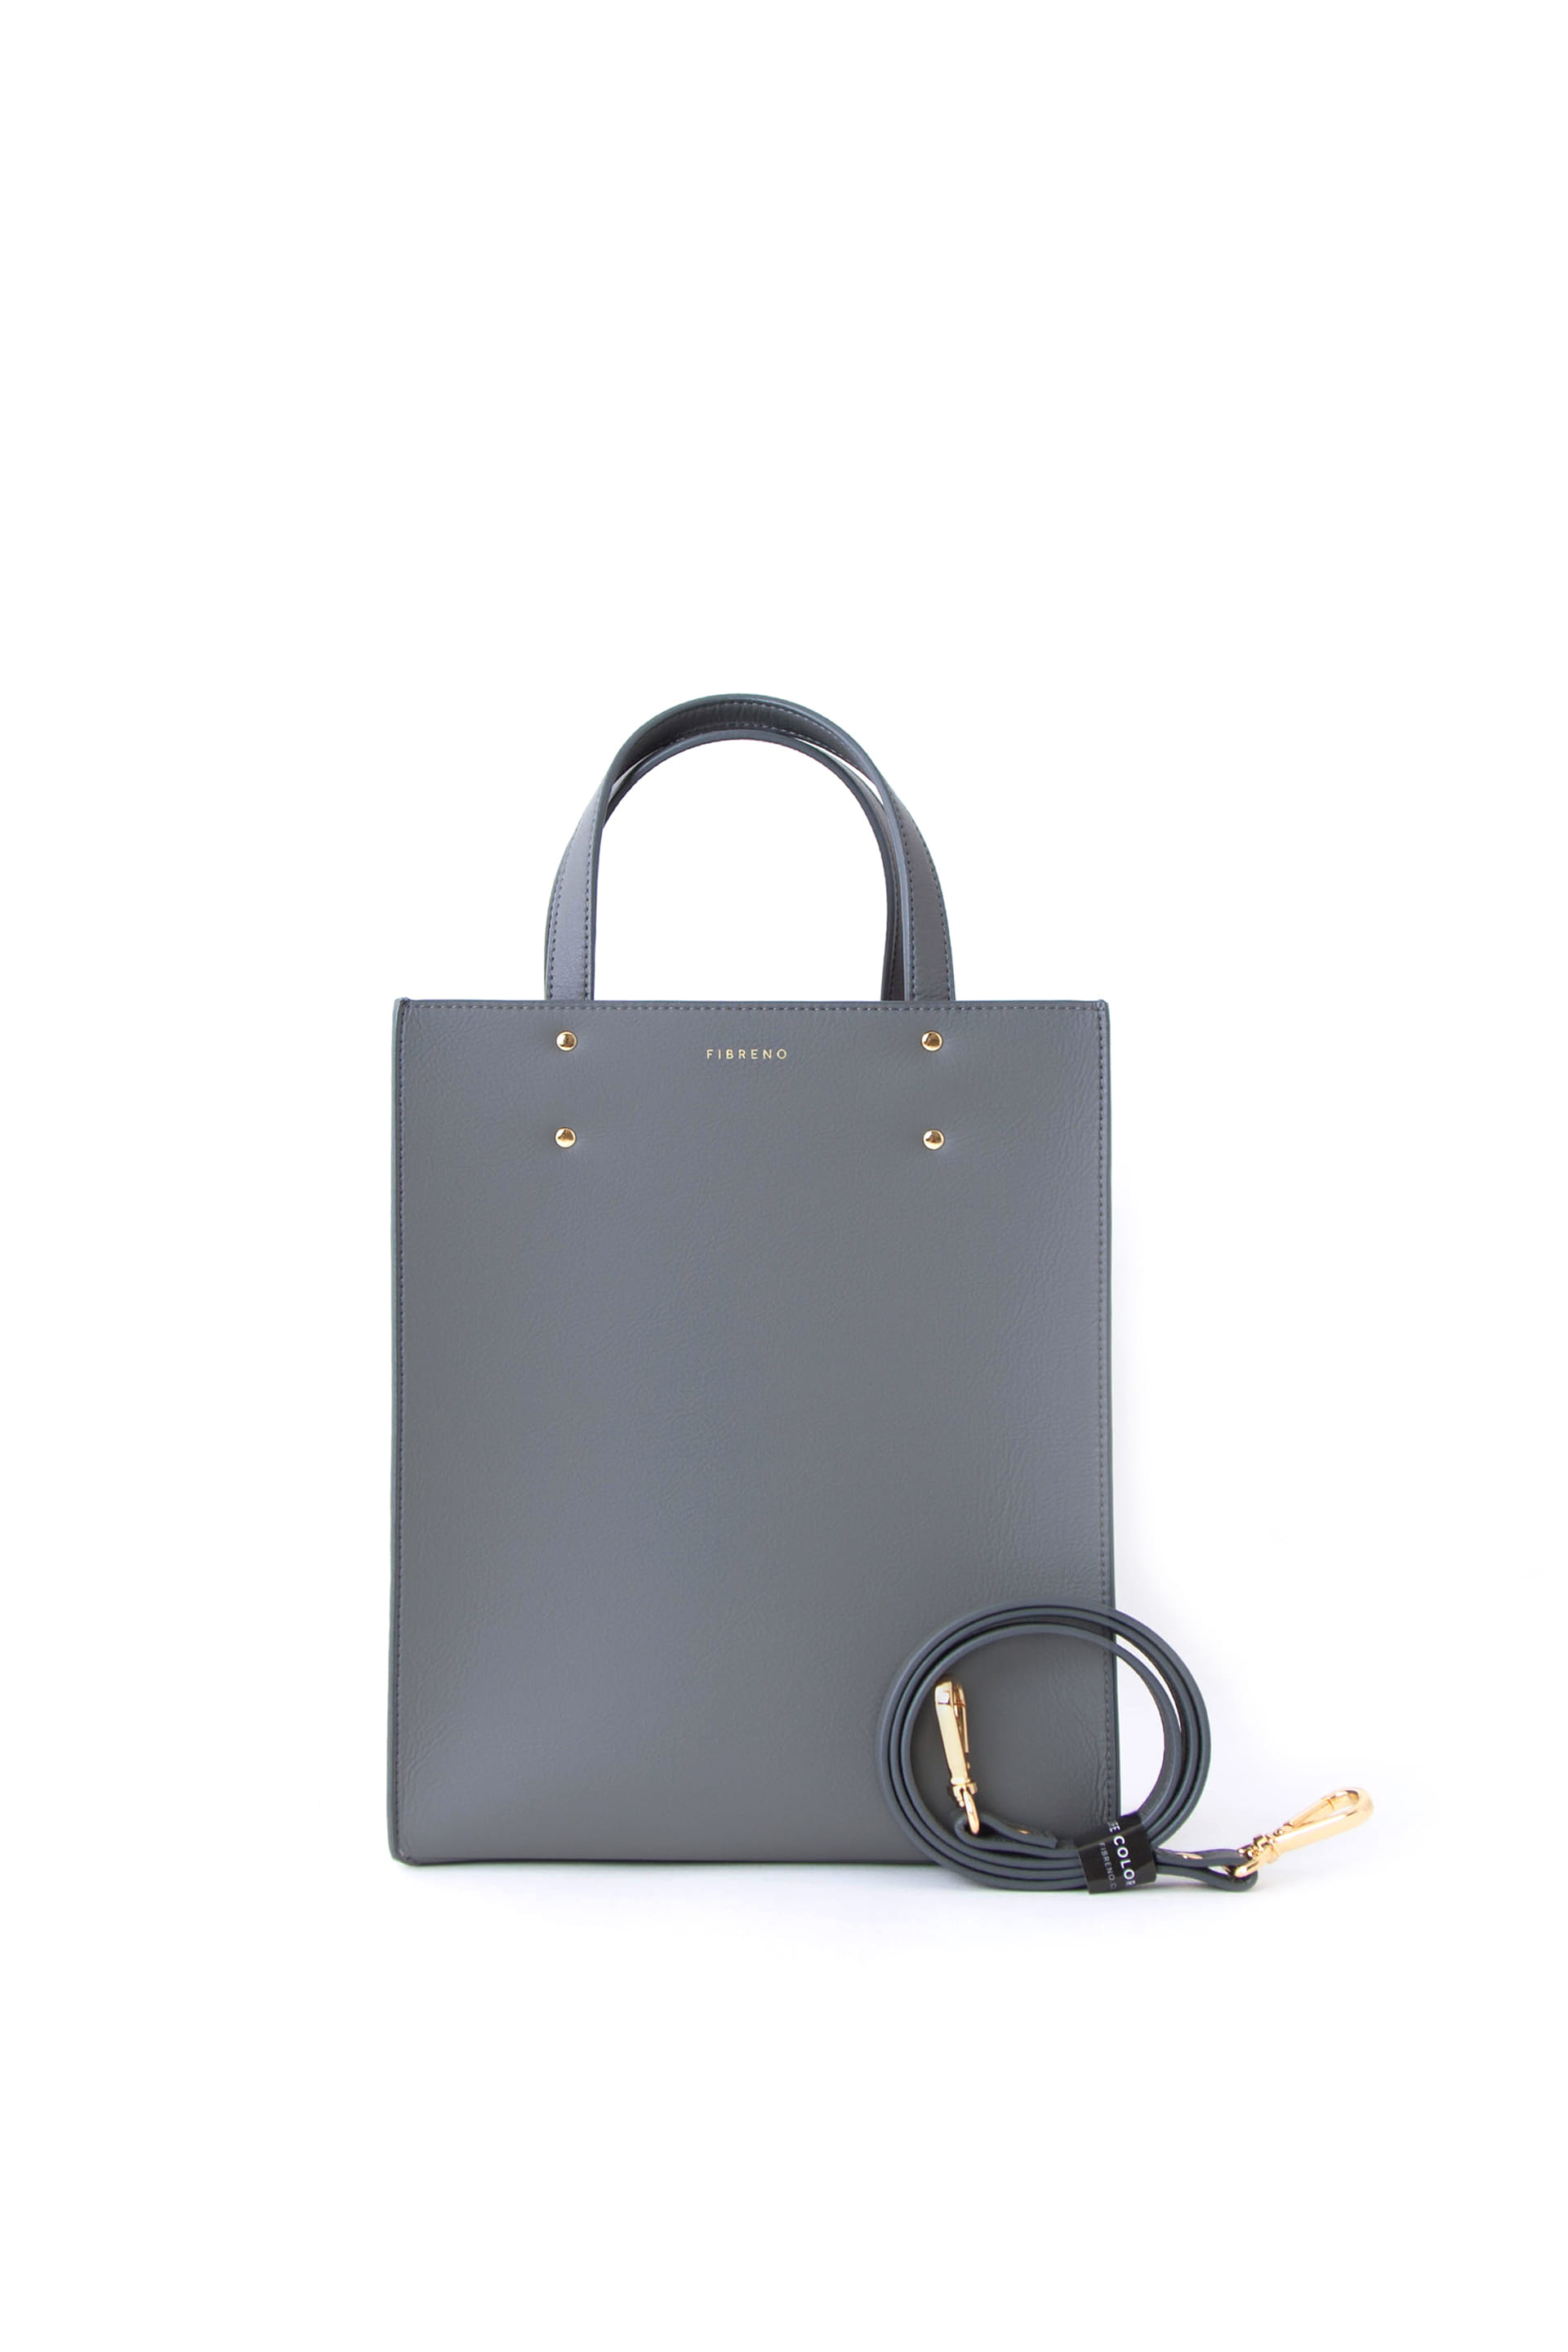 ORIGINAL MINI BAG 21 Dark Grey